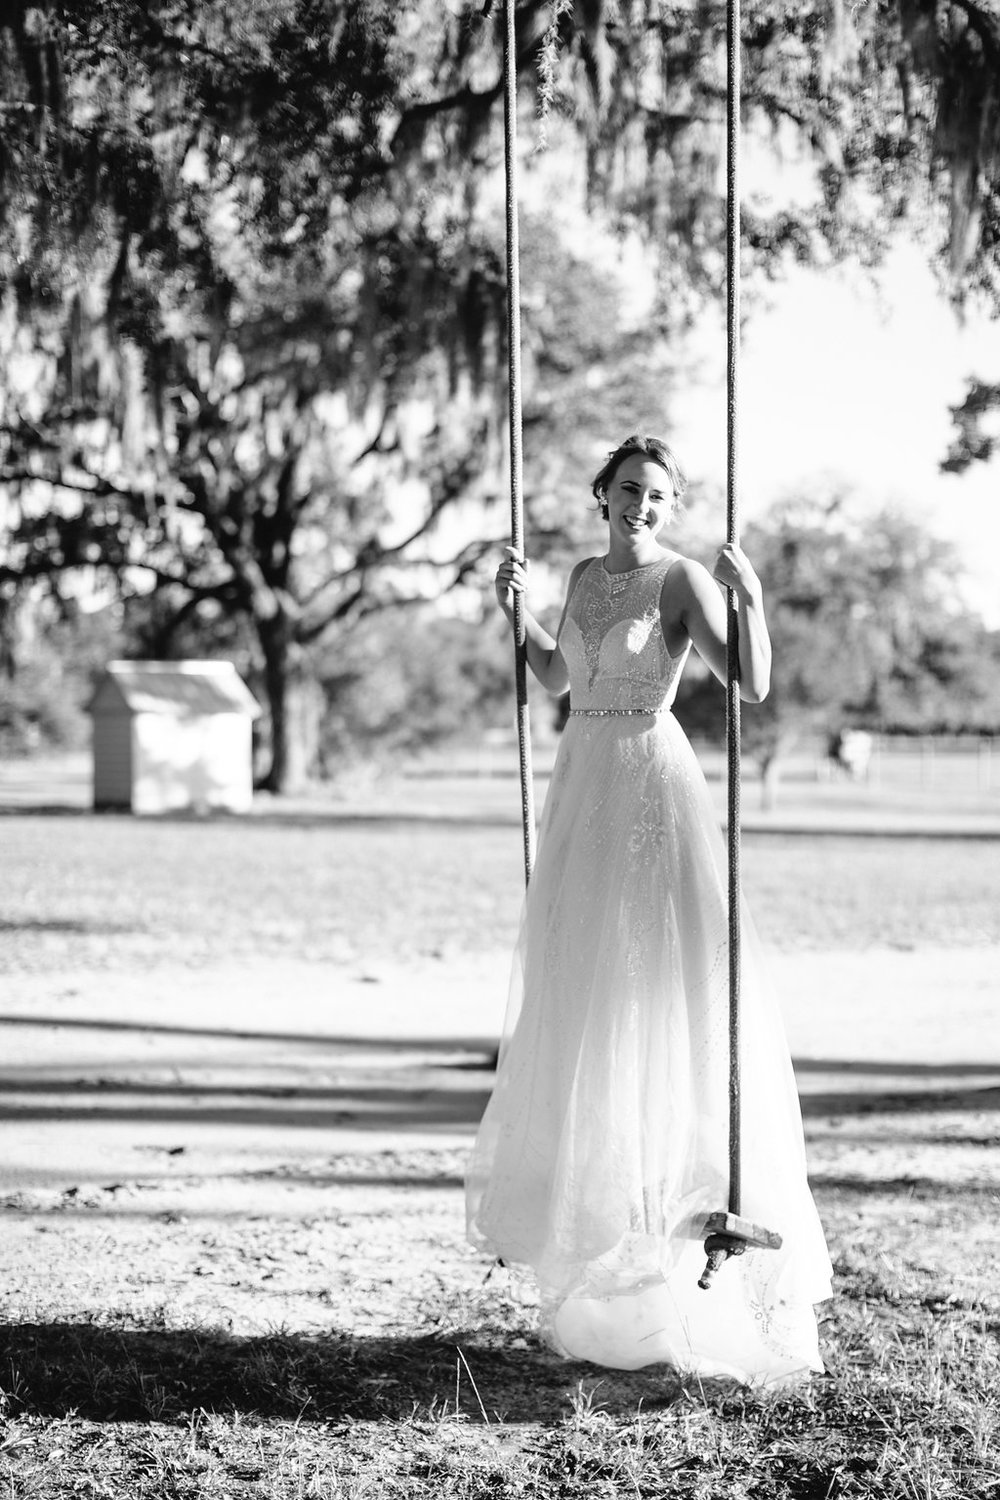 Bride on a swing in a Calle Blance Gown at Sugah Cain Plantation on Johns Island, SC  Bride and her maids at Sugah Cain Plantation in front of white horse and Carriage  //  on A Lowocountry Wedding Magazine & Blog